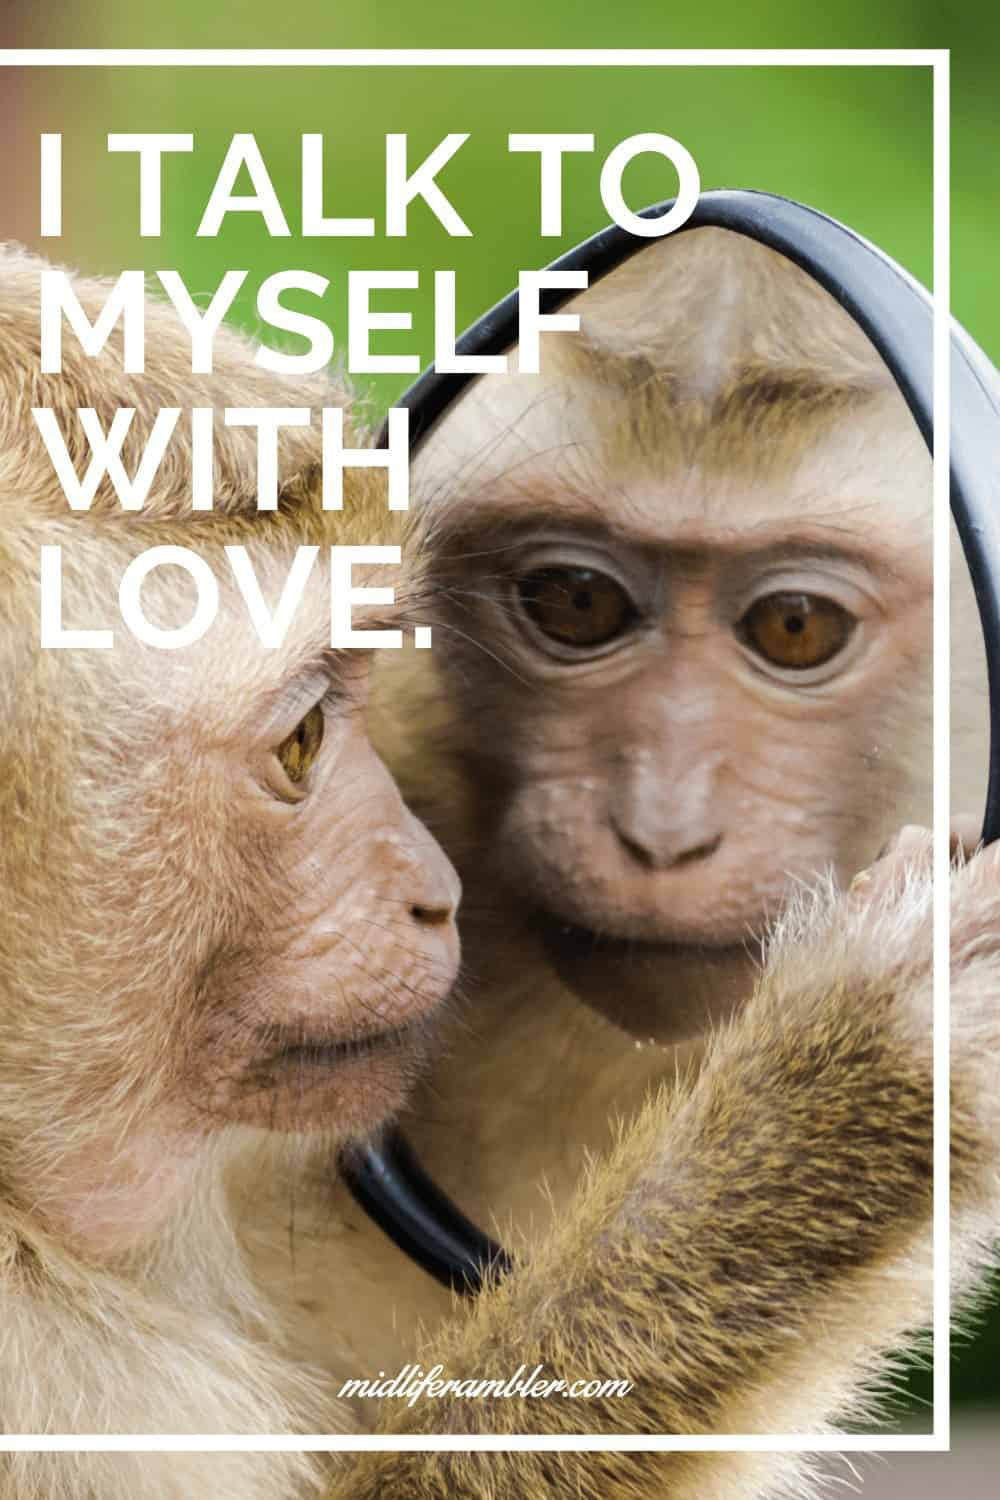 Affirmations for Self-Compassion - I talk to myself with love.